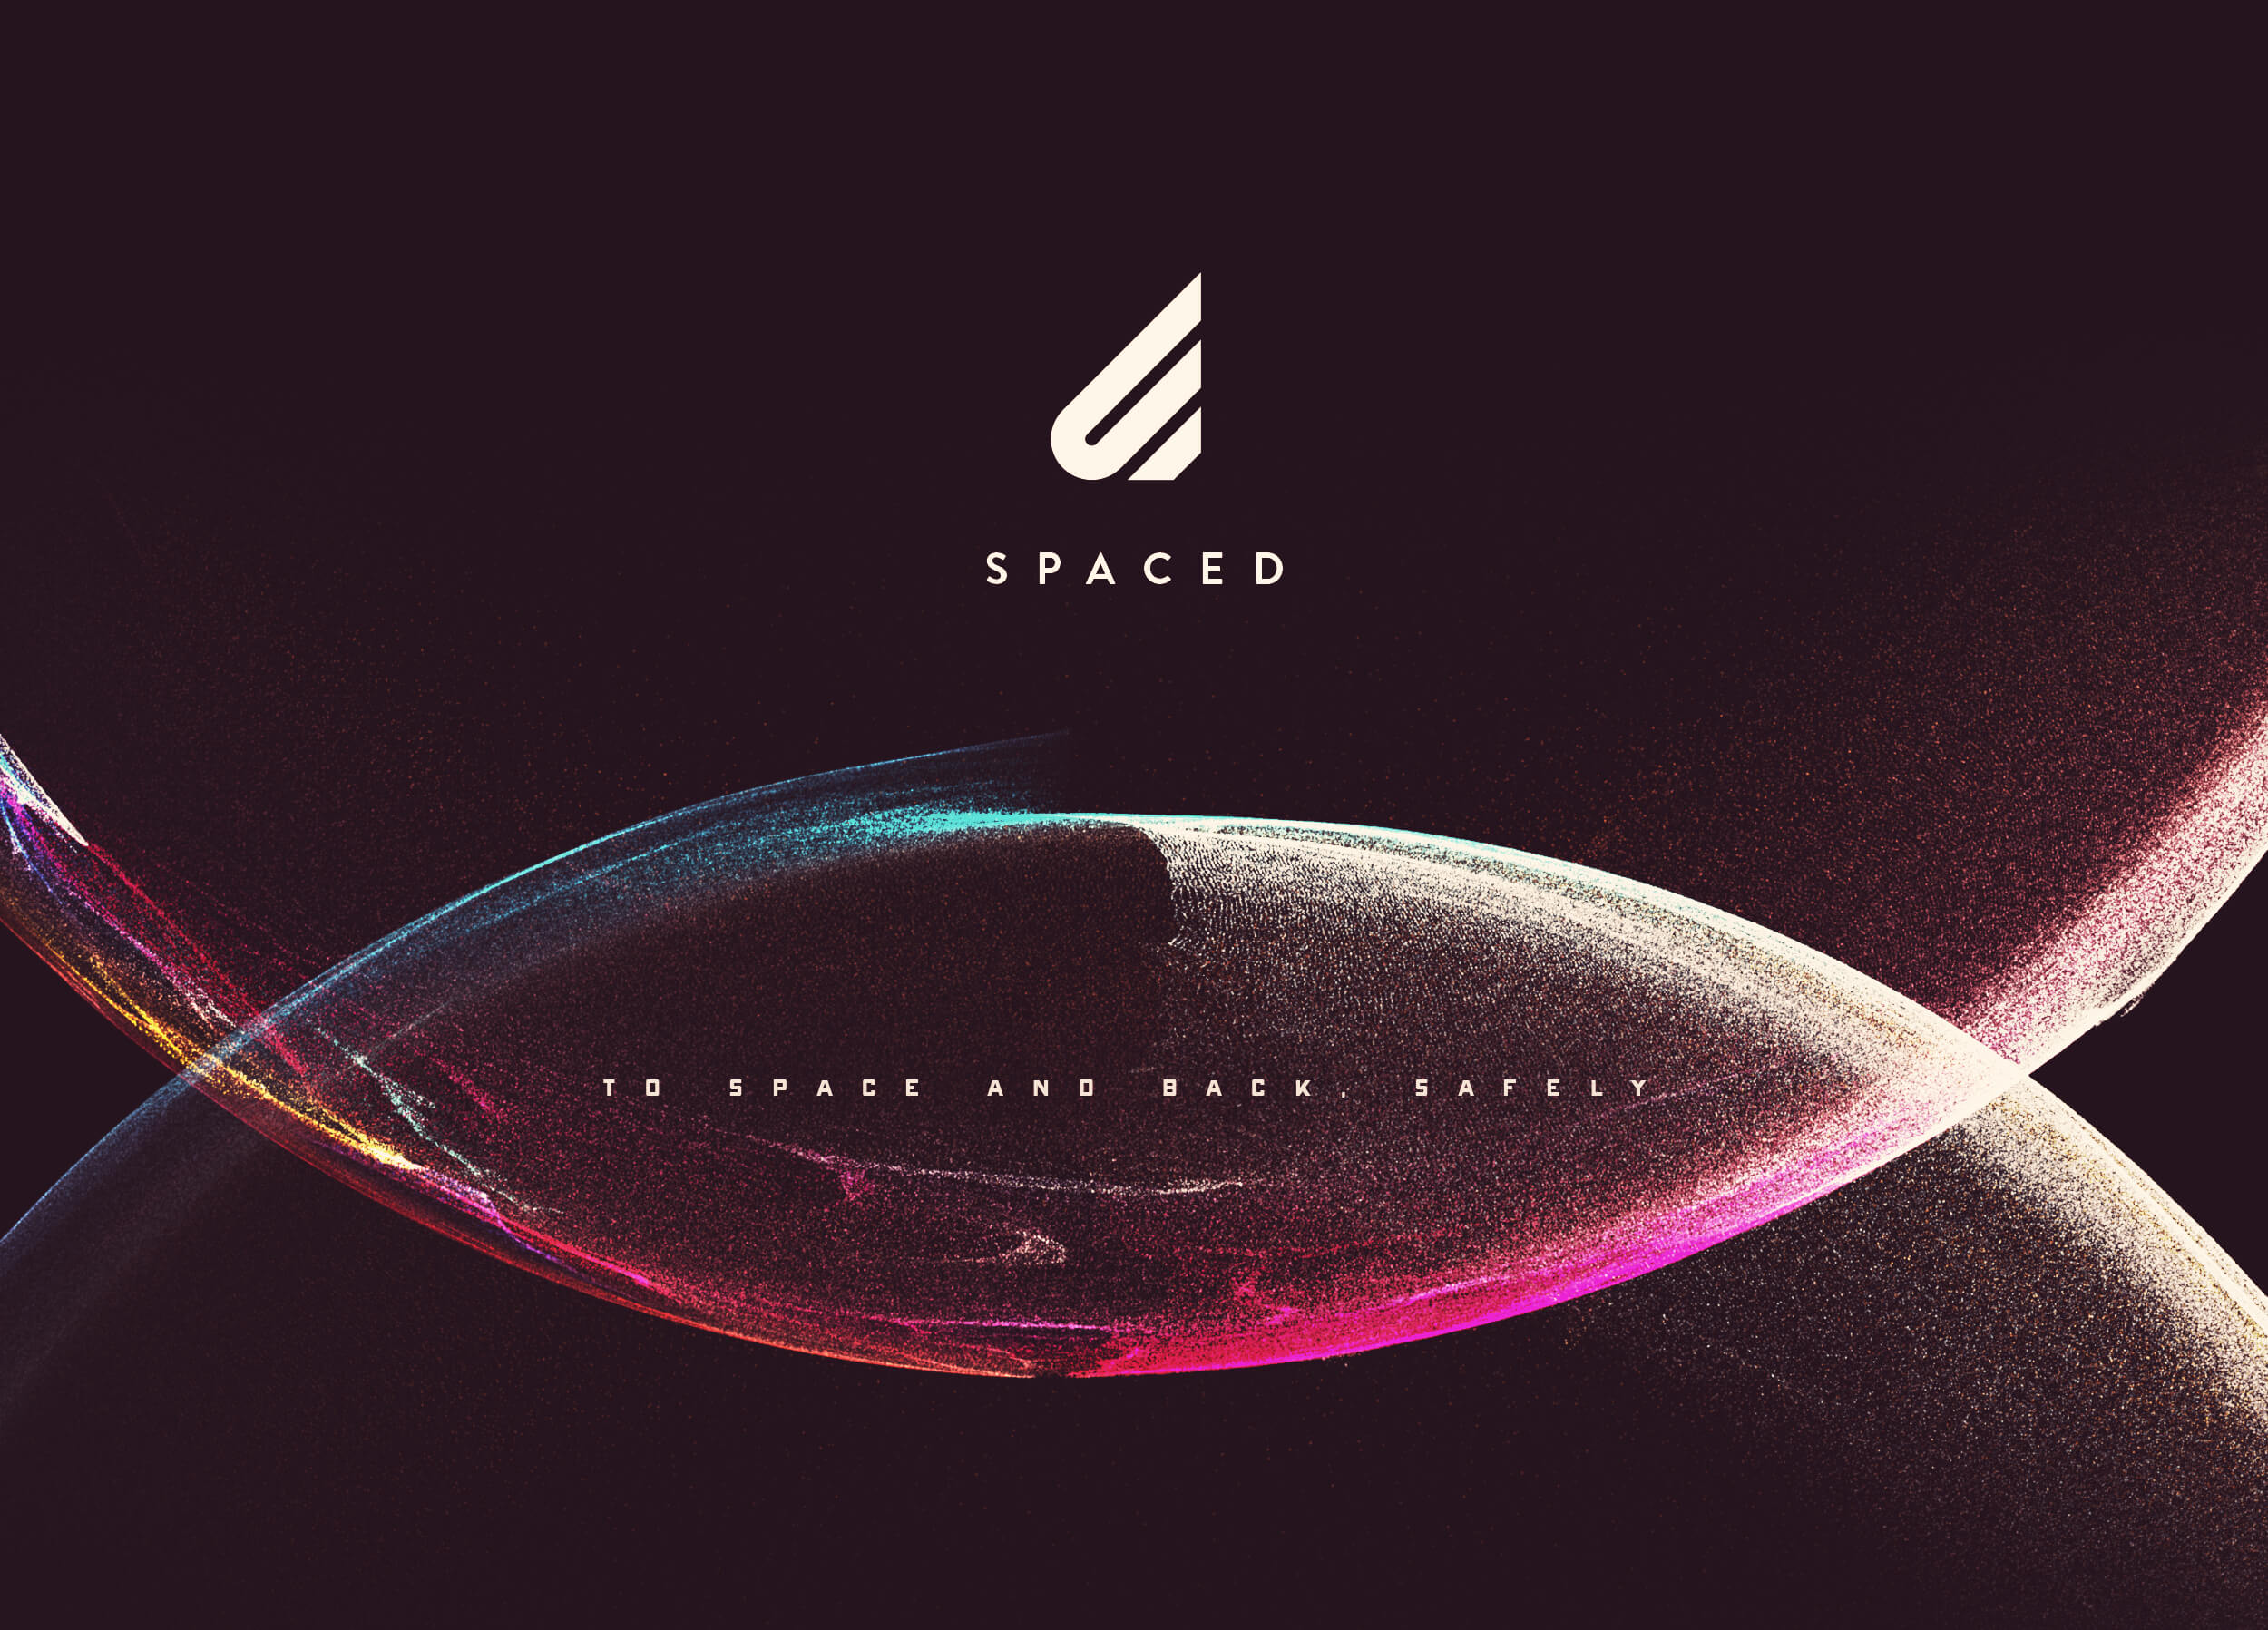 spaced-comp-copy_01